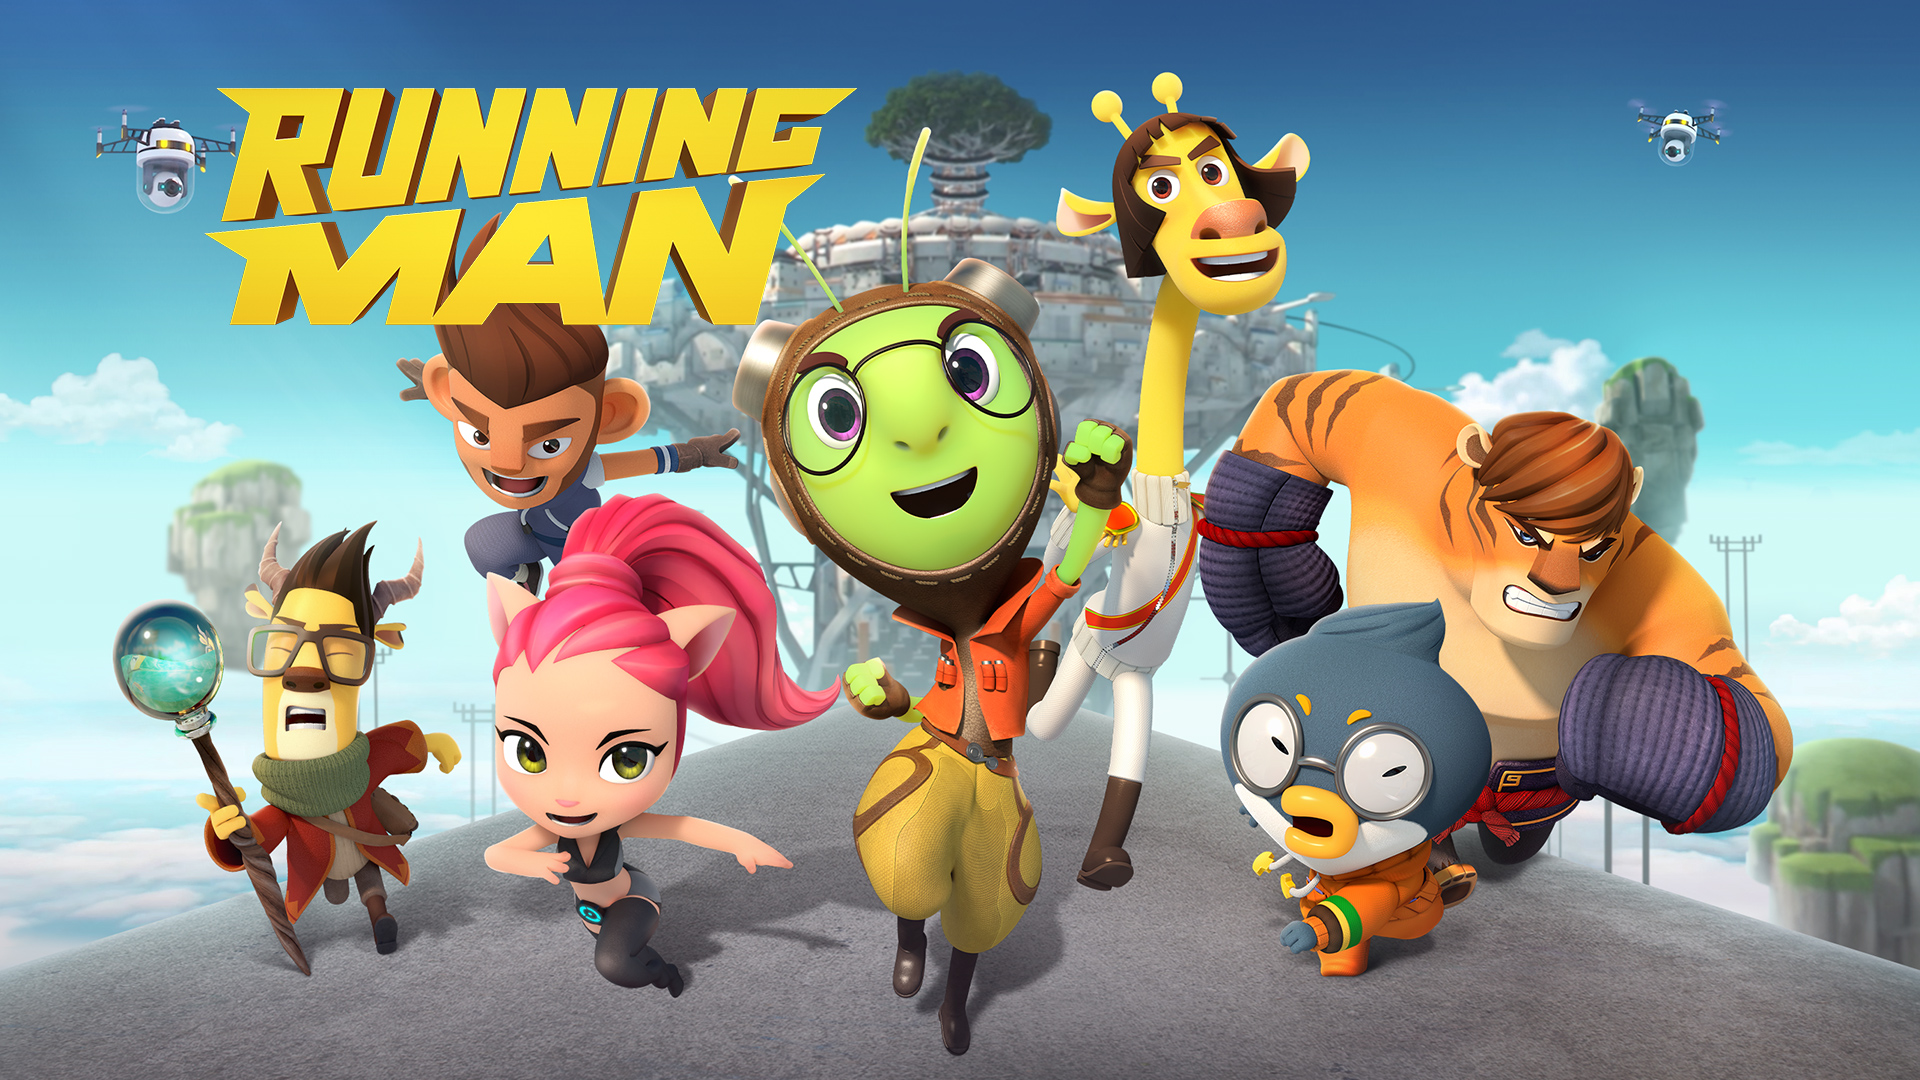 RUNNINGMAN ANIMATION